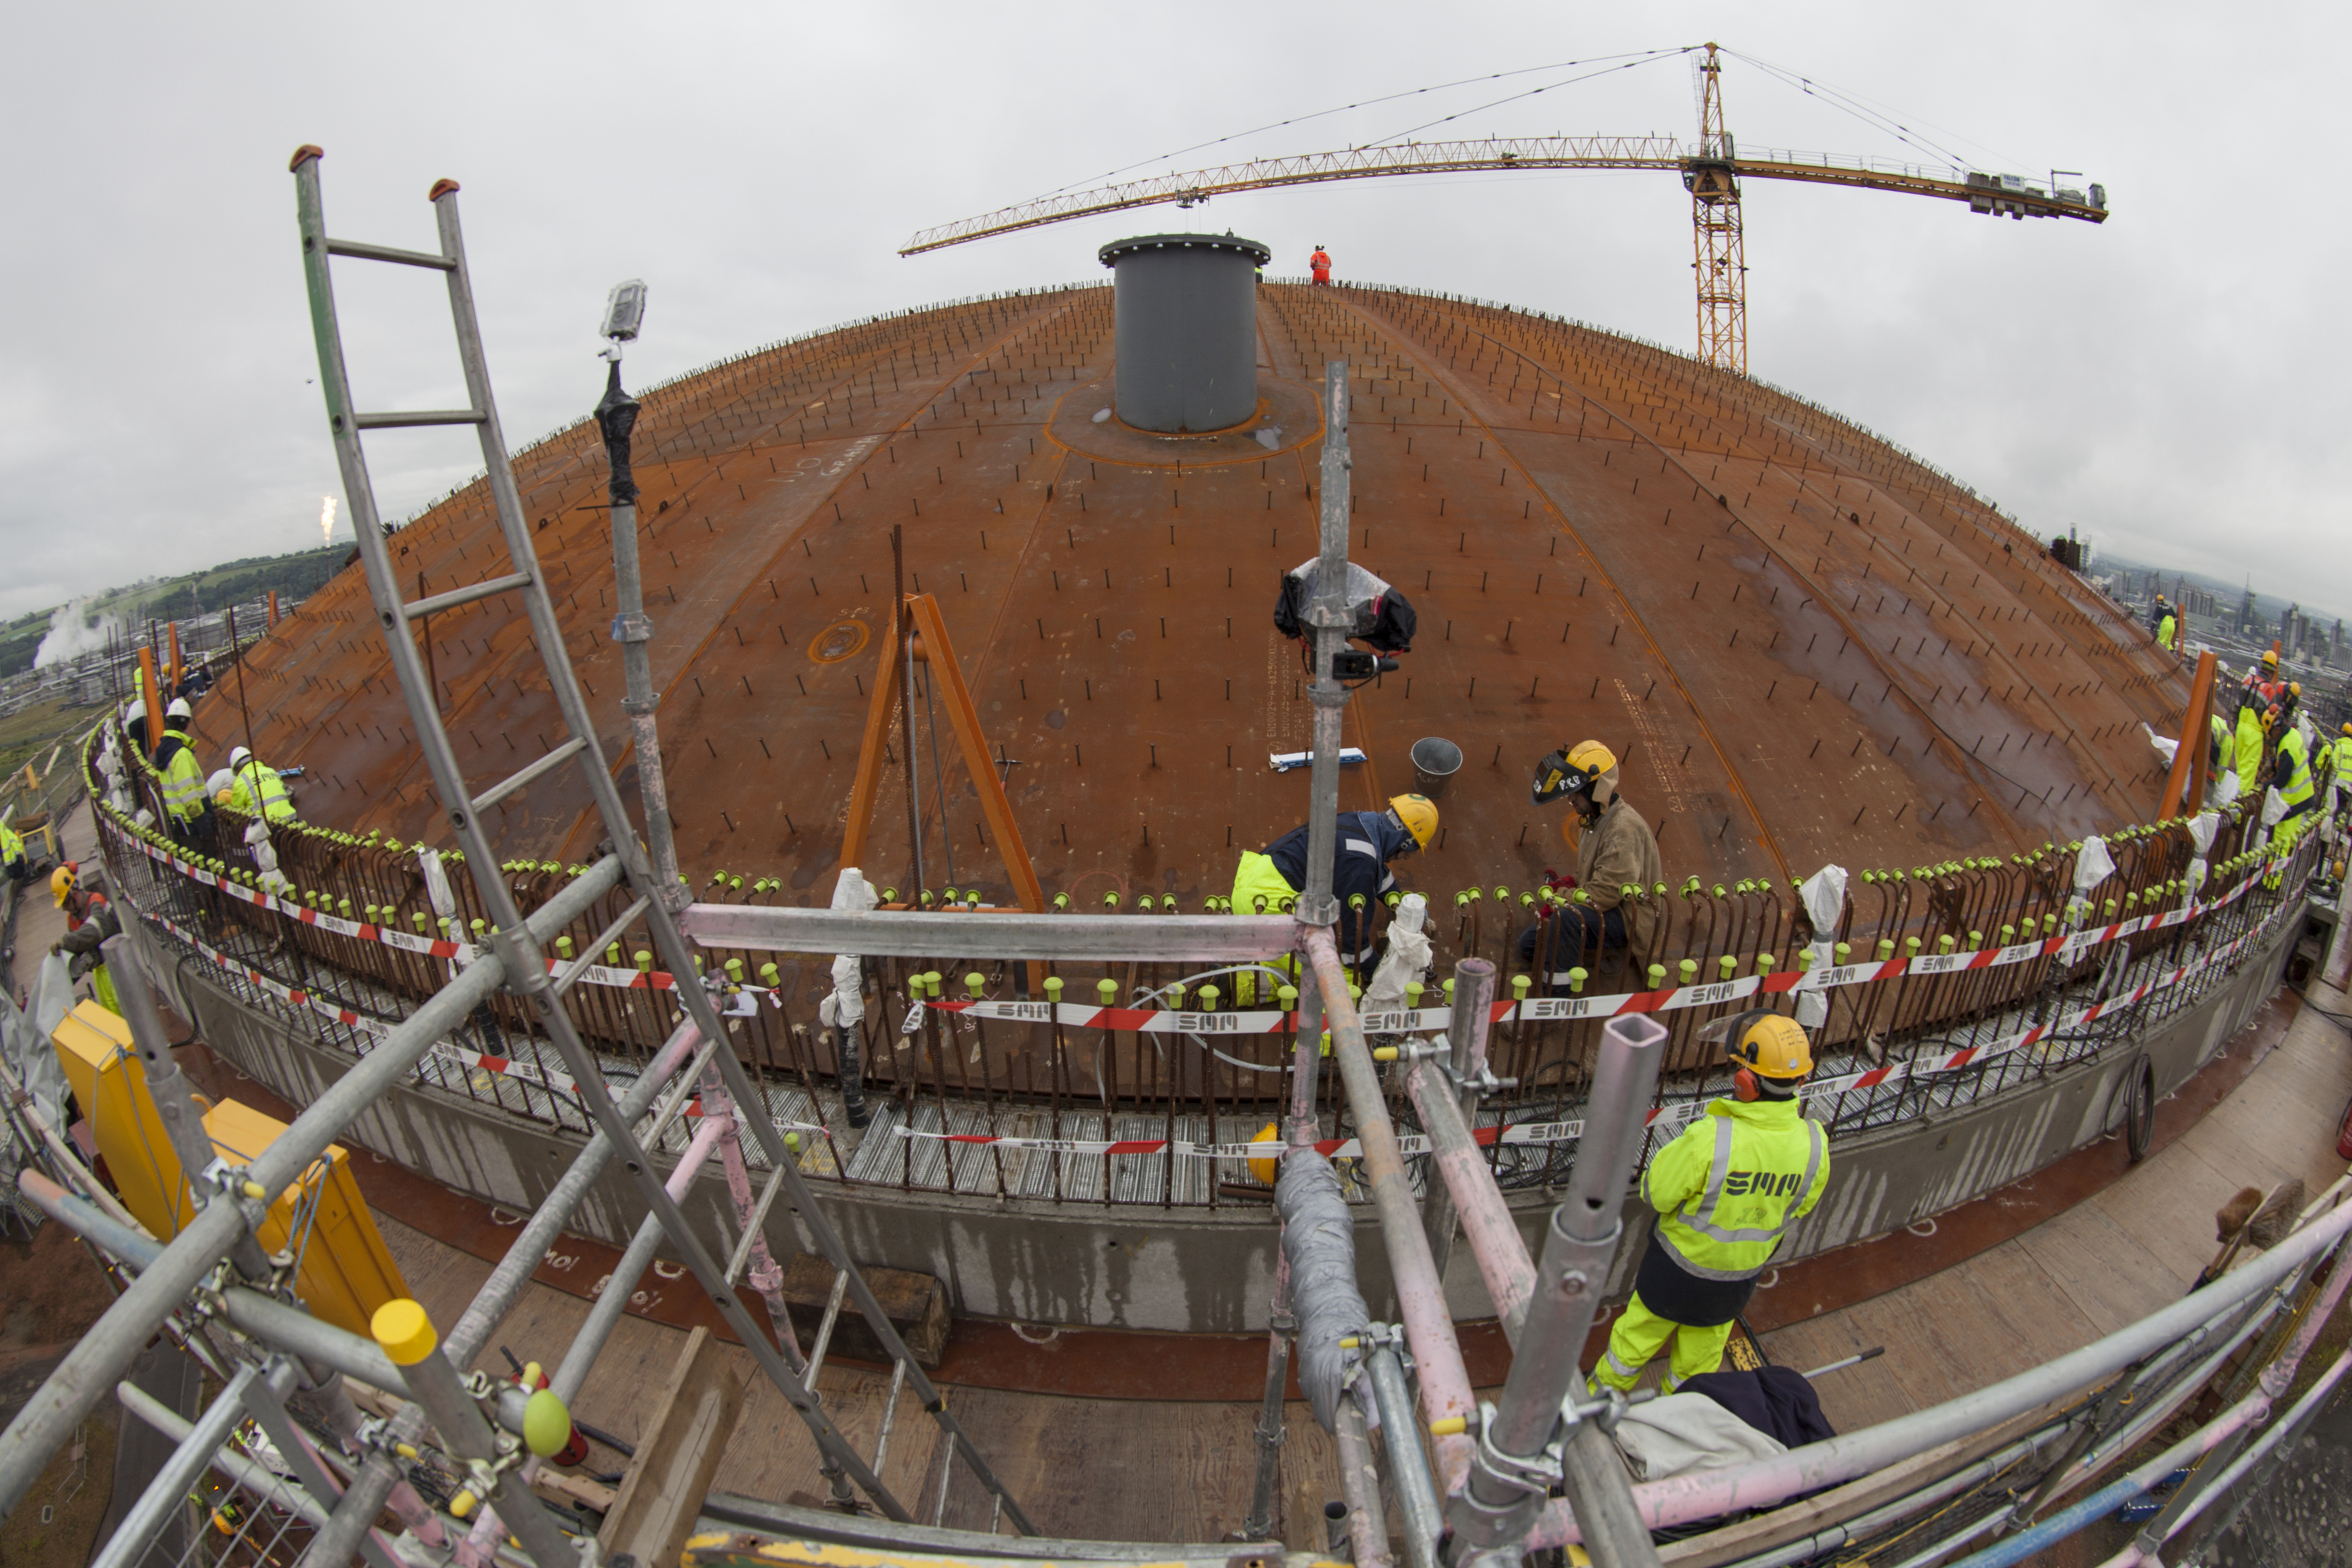 Engineers fixing the ethane tank's roof in place at Grangemouth yesterday.